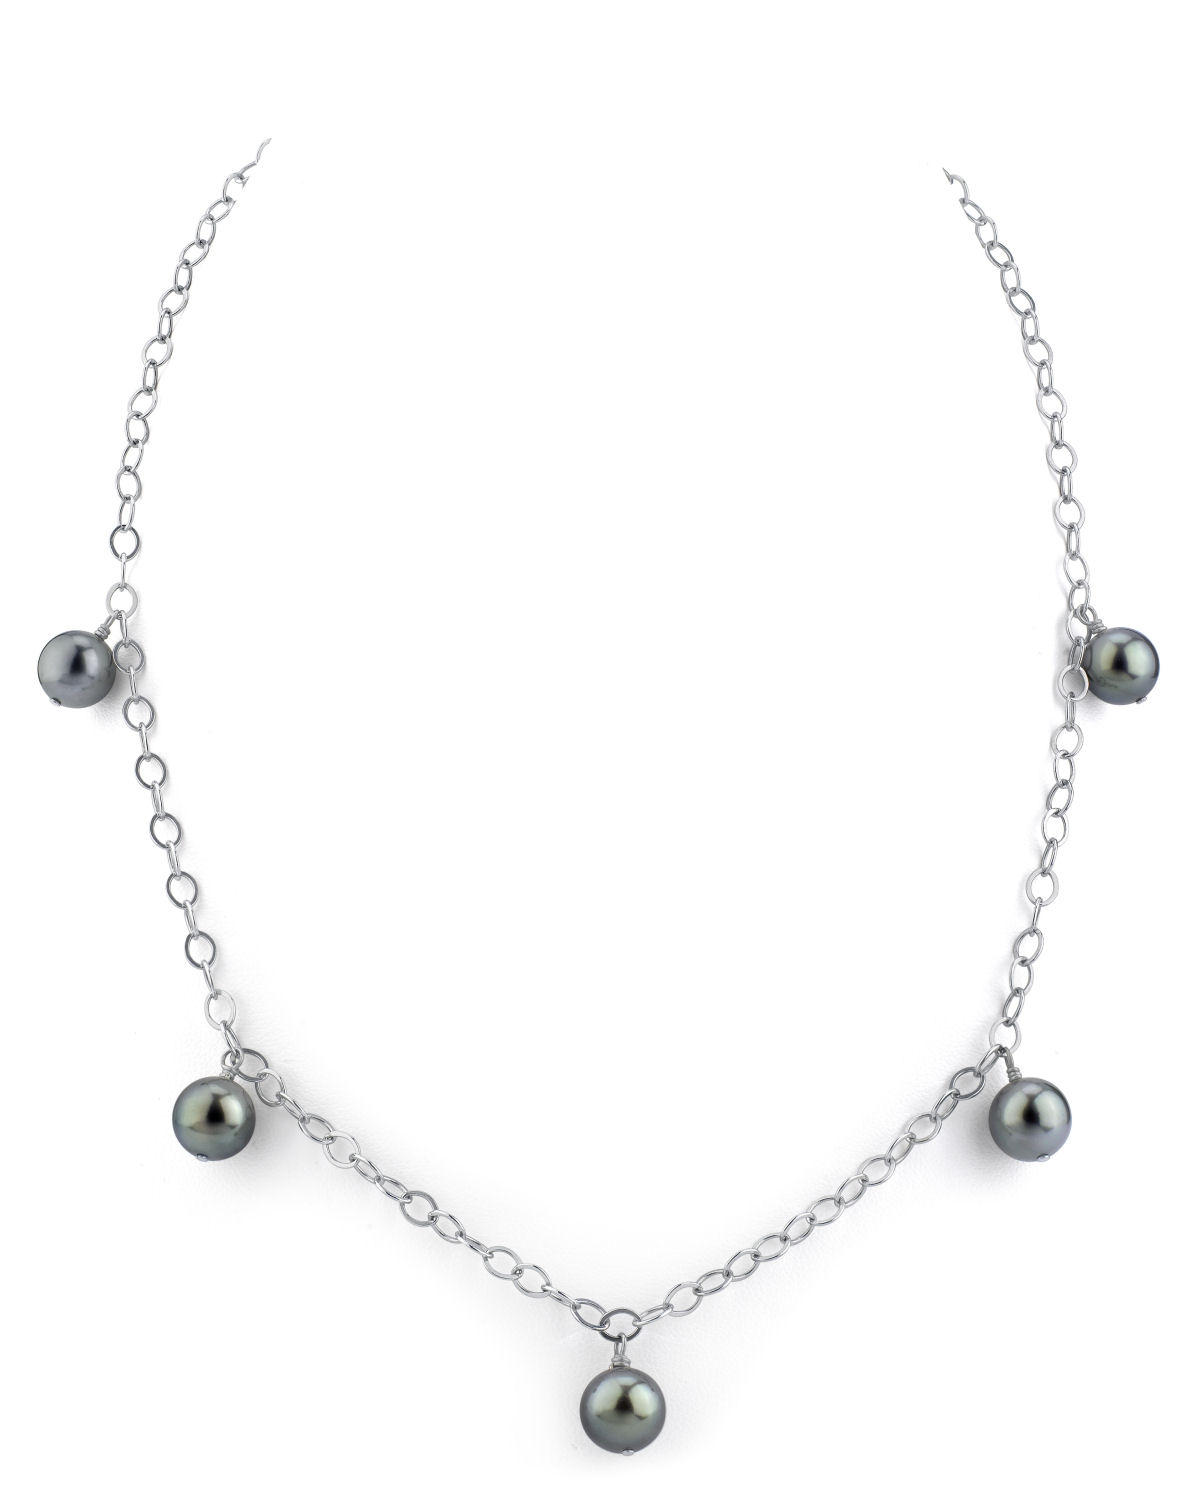 9mm Tahitian South Sea Pearl Dangling Tincup Necklace